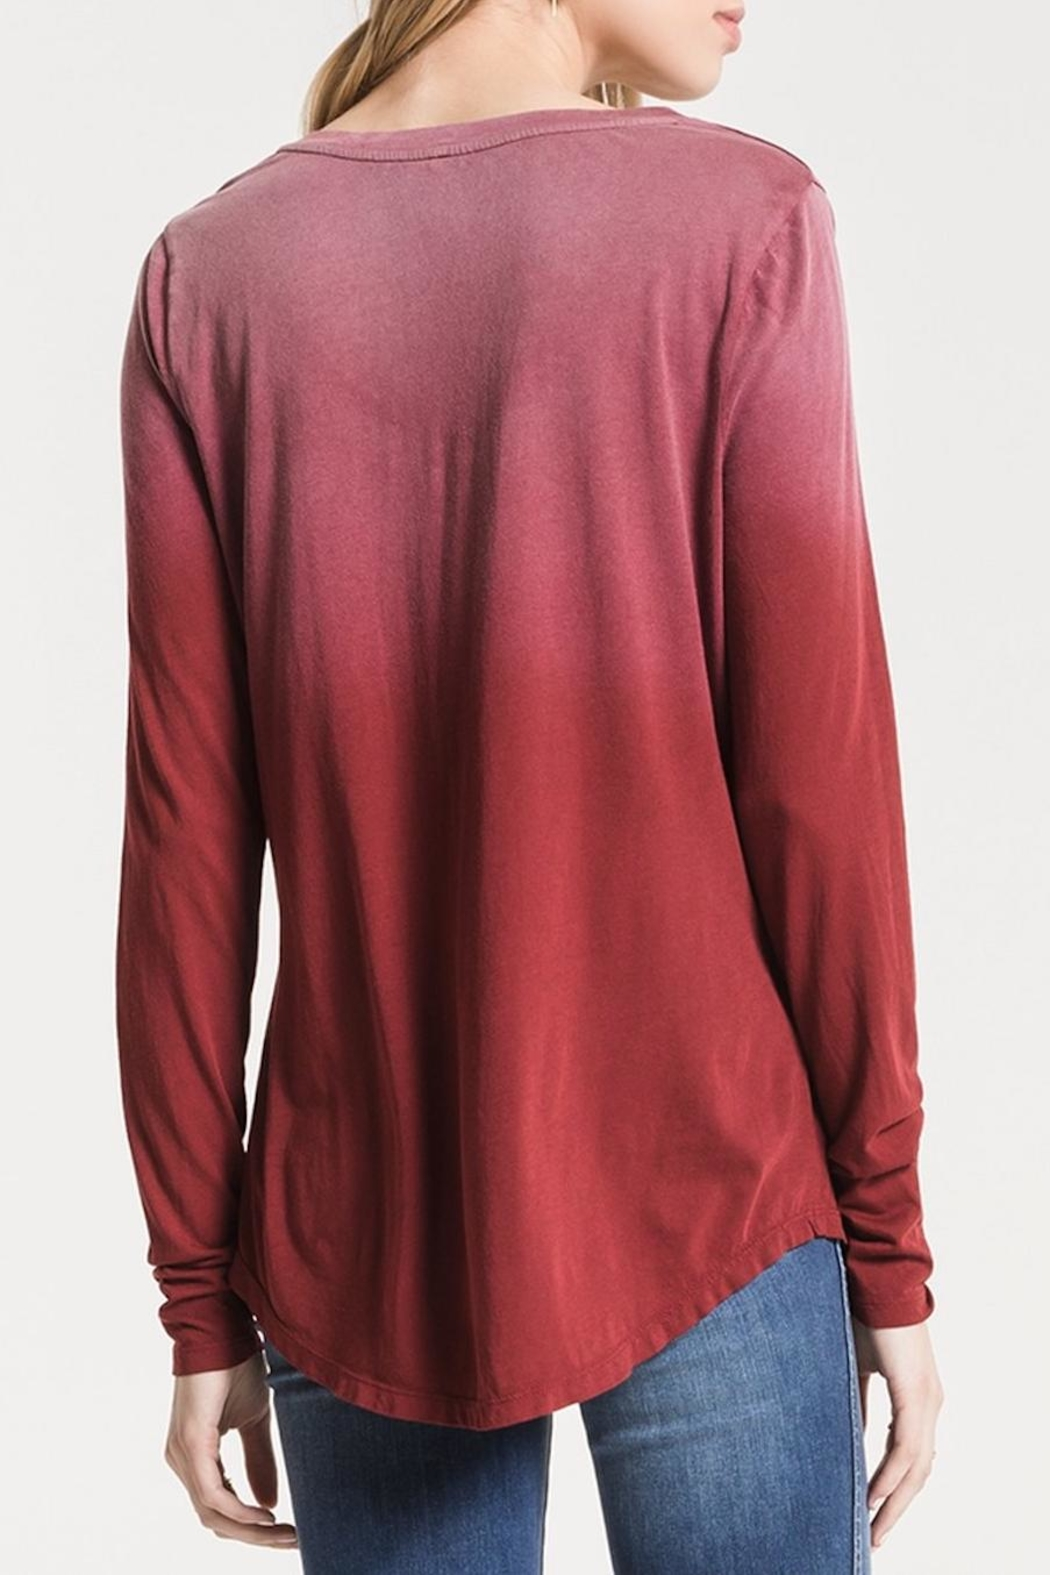 z supply Ombre Long Sleeve - Back Cropped Image